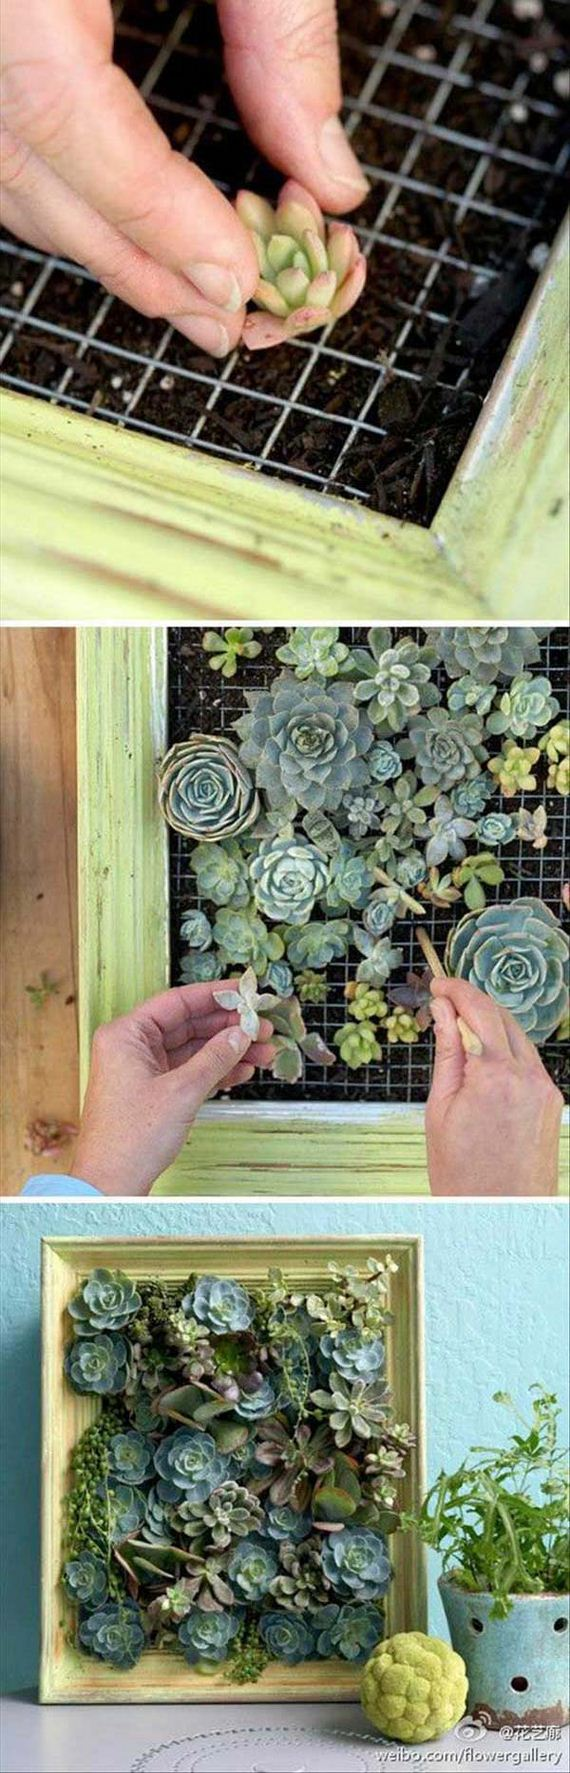 05-indoor-garden-projects